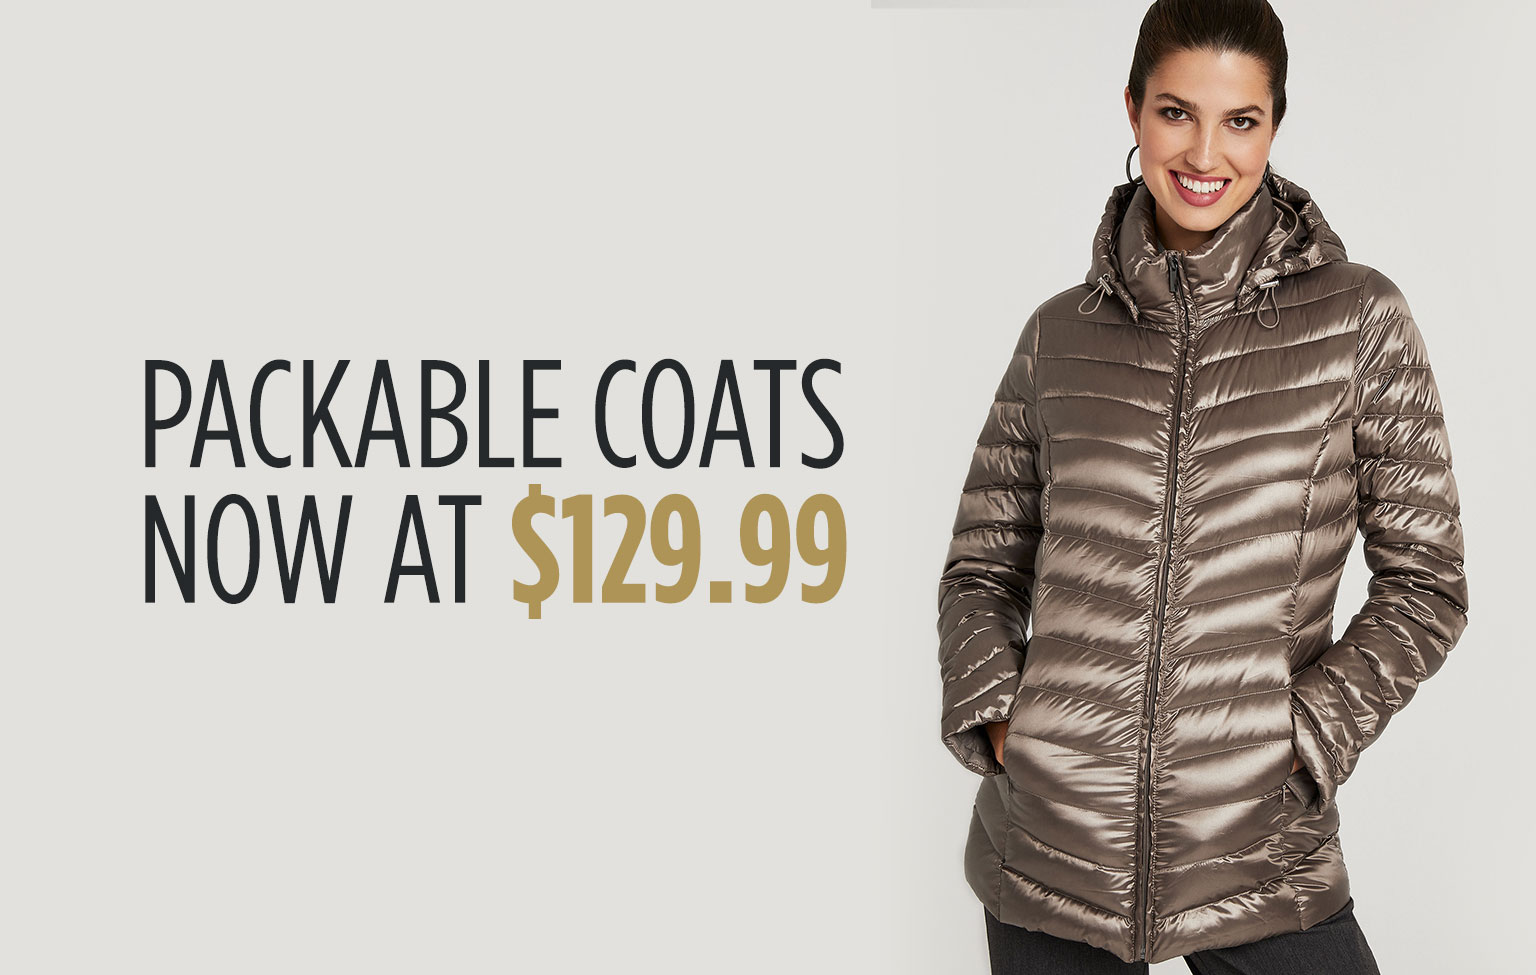 Packable Coats for $129.99